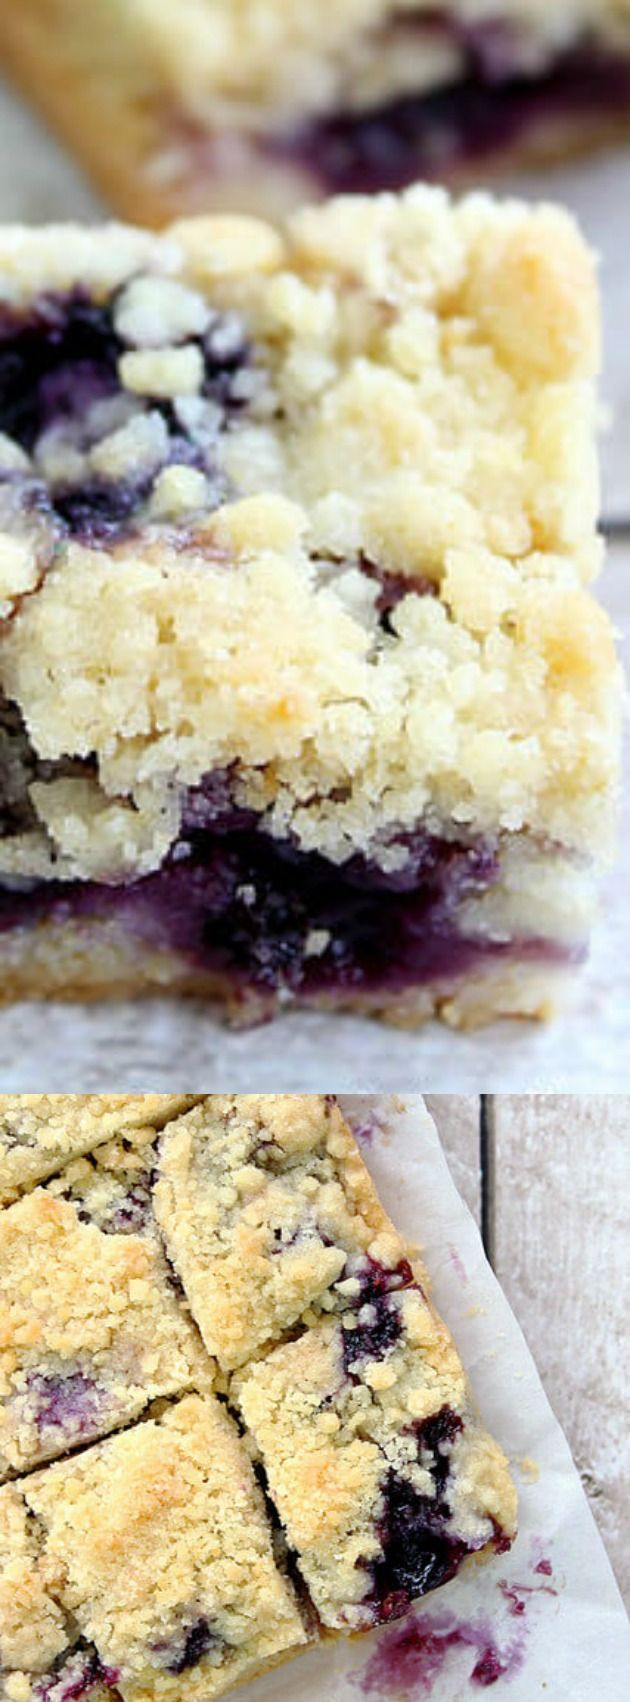 These Blueberry Crumble Bars from Jamie at Love Bakes Good Cakes are filled with blueberries and comes out of the oven warm and delicious. They are buttery and have an amazing crumble topping that you are really going to love.